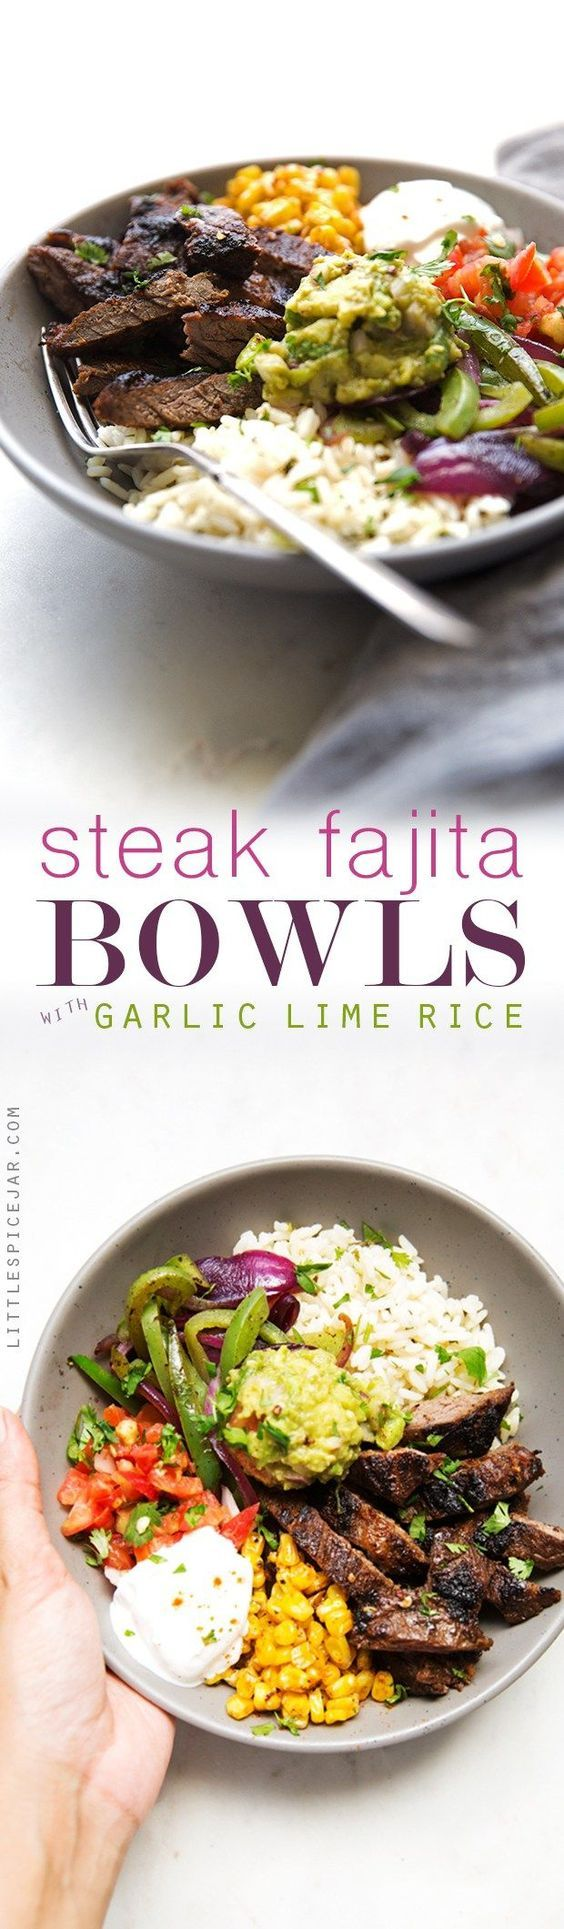 Homemade steak fajita bowls with garlic lime rice. These fajita bowls taste even better than the ones at Chipotle! The secret is the homemade marinade for the steak.